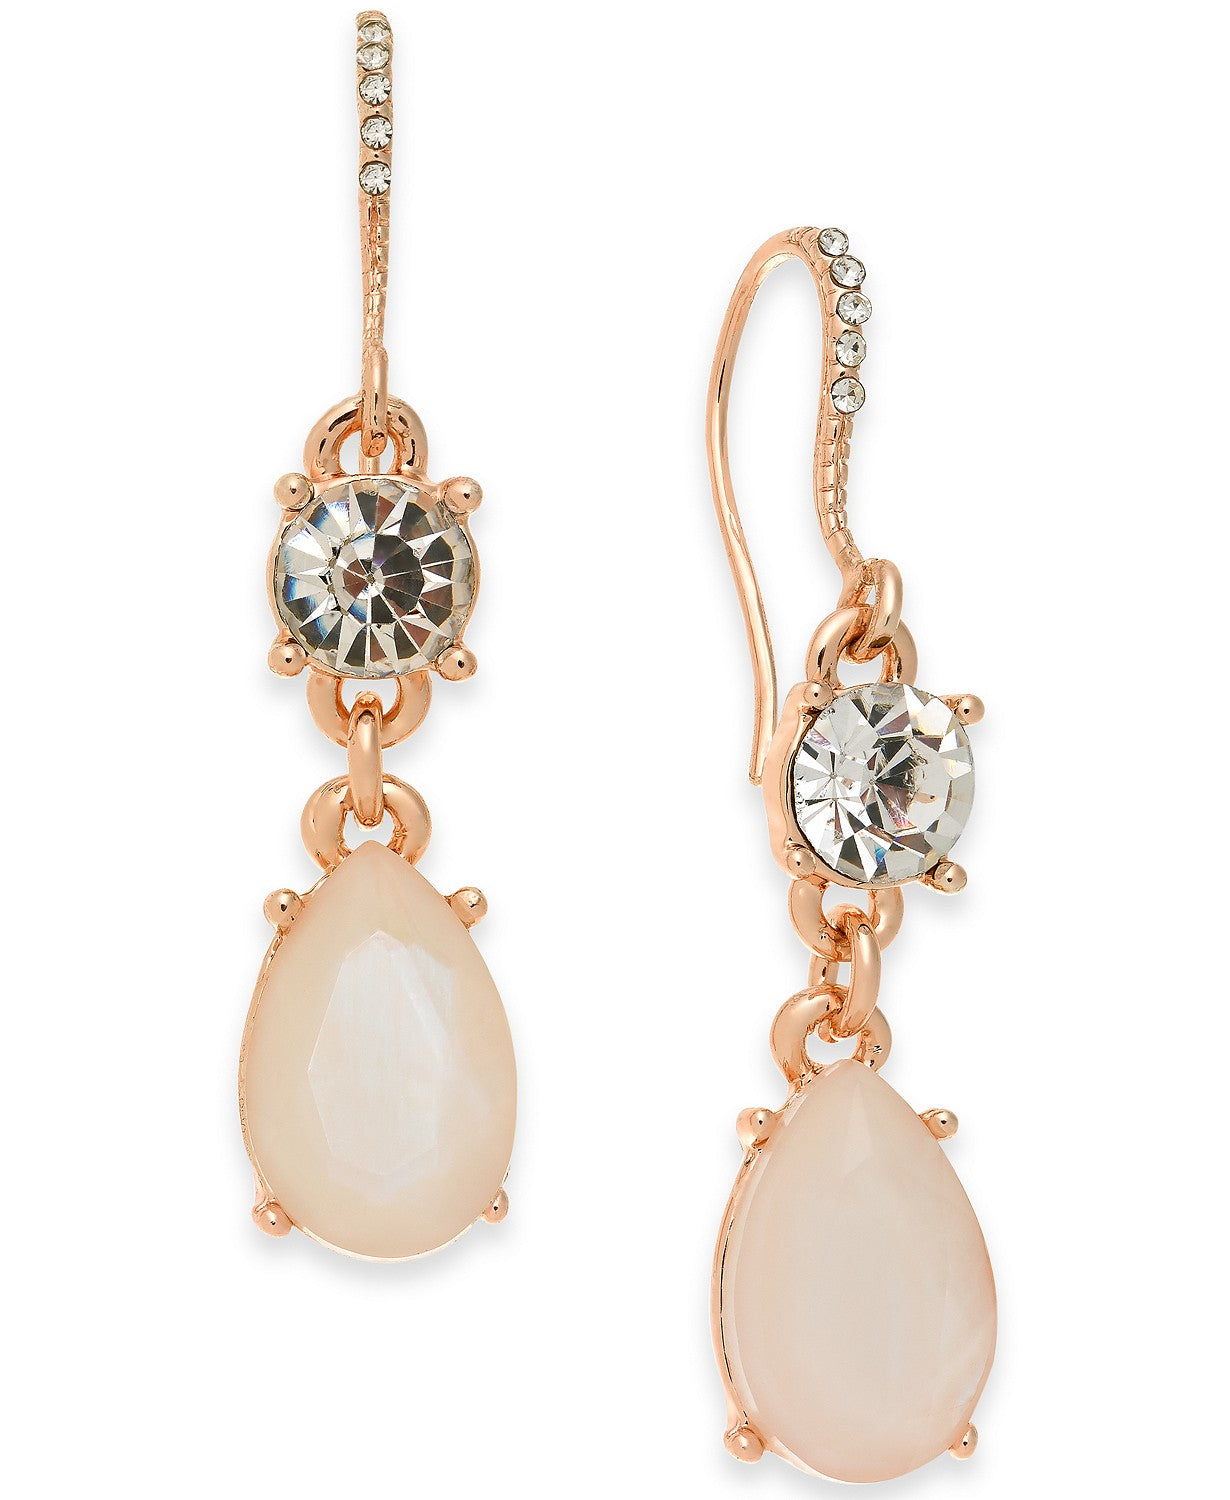 Gold-Tone Crystal & Stone Double Drop Earrings